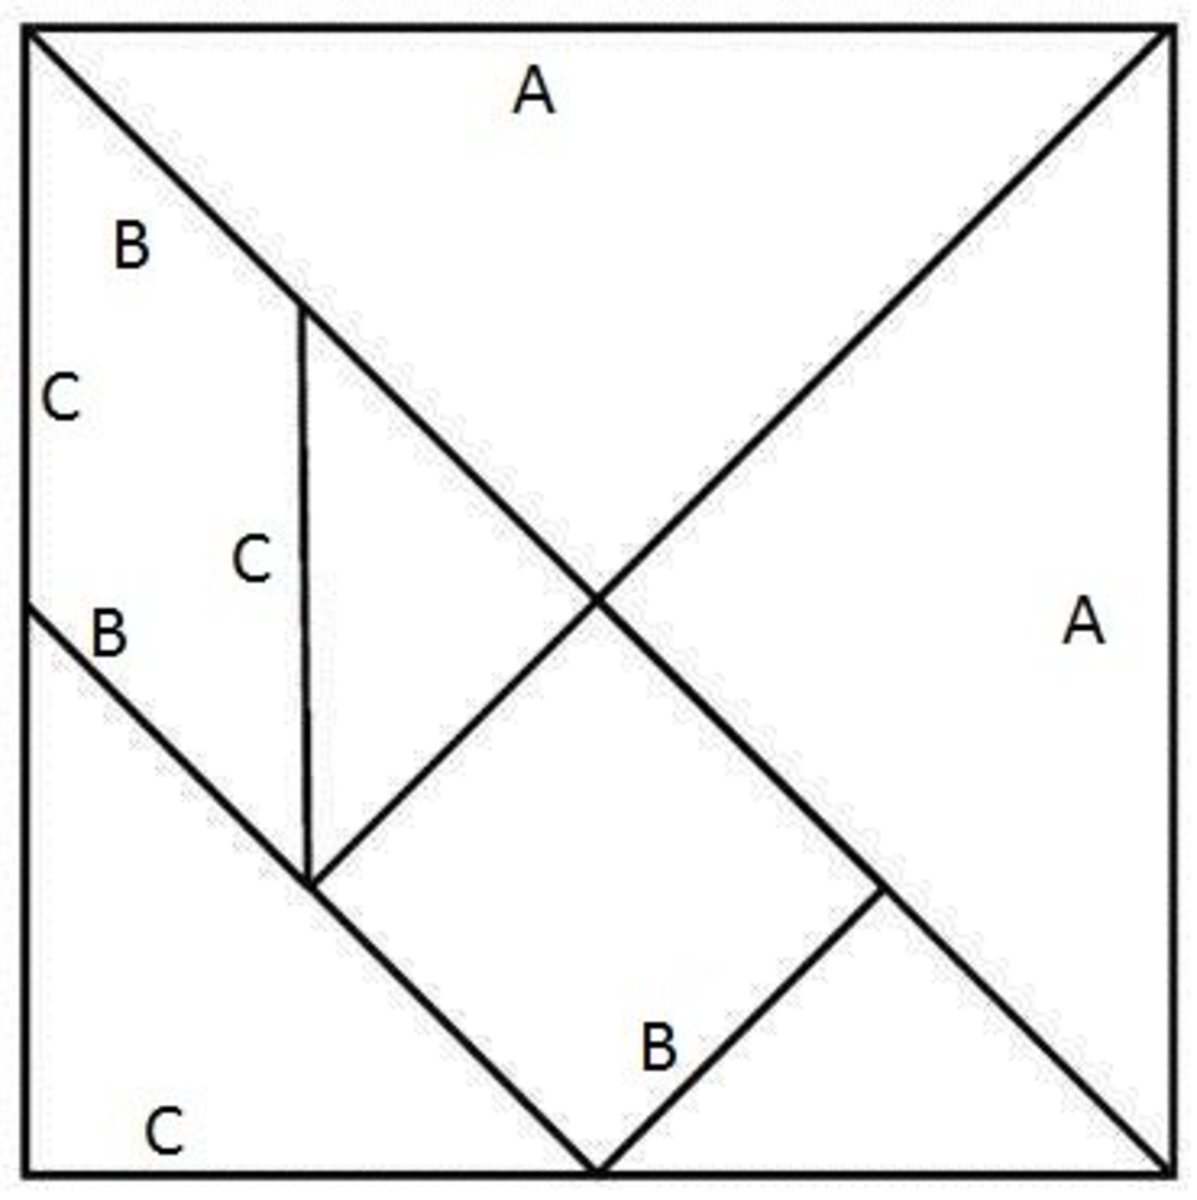 Use this template to make your own tangram game. Be sure to measure carefully! If you can't draw it out, this is a printable tangram template.